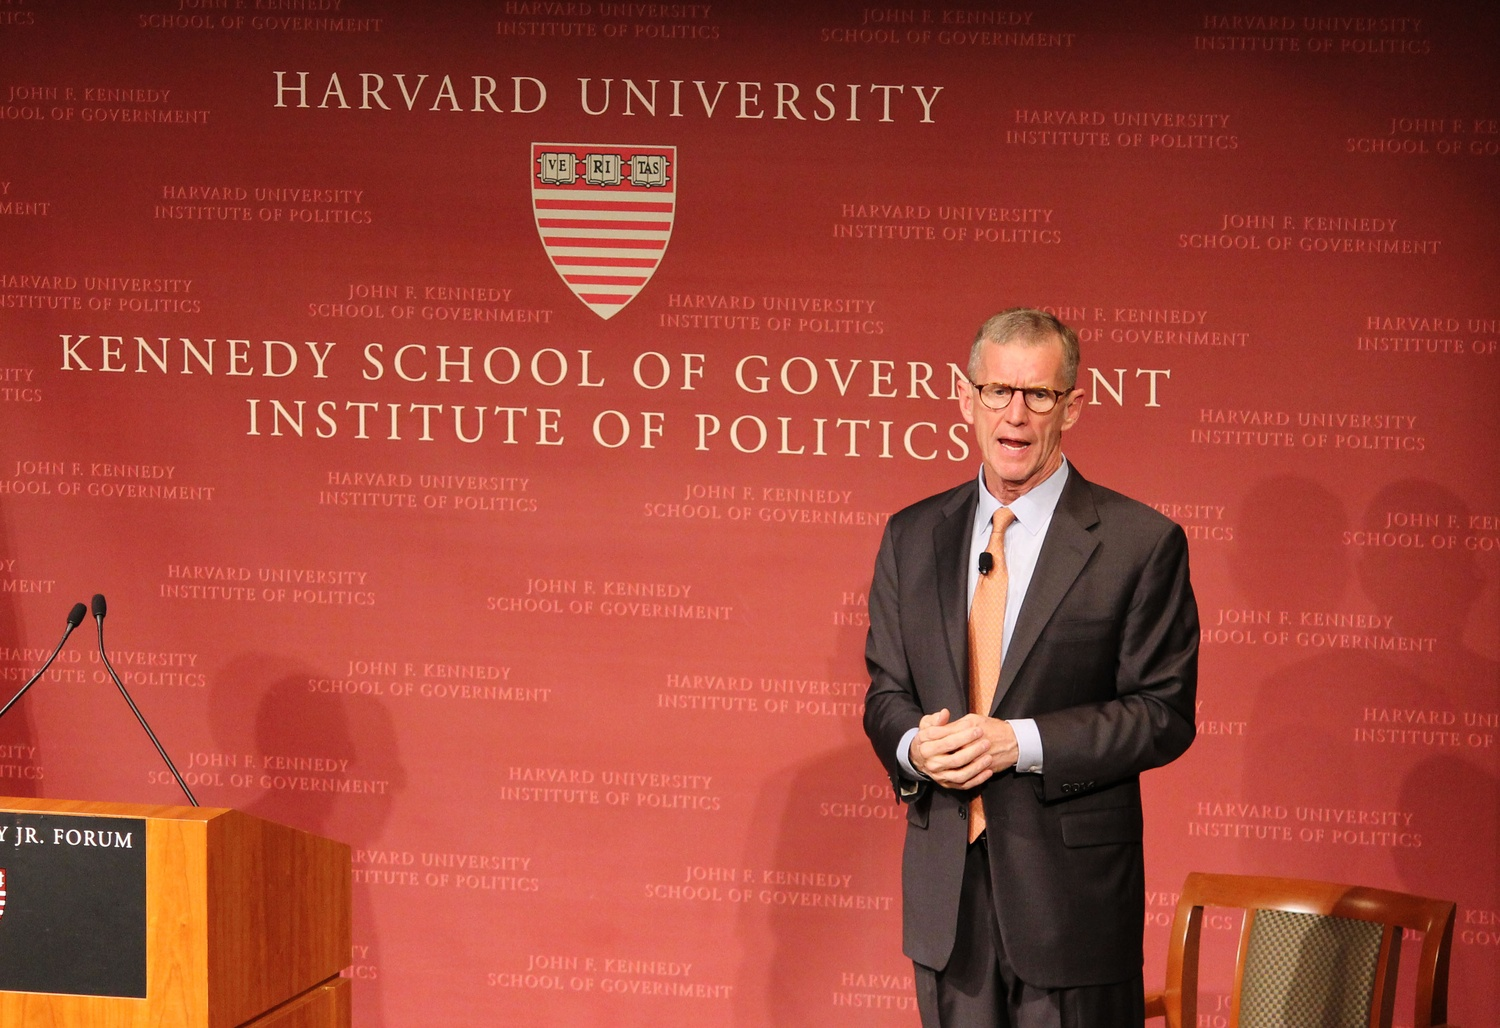 Retired Four Star Army General Stanley A. McChrystal speaks about citizenship at the Institute of Politics JFK Forum Wednesday night. He spoke of the importance of civil service and fielded questions from the Harvard community.